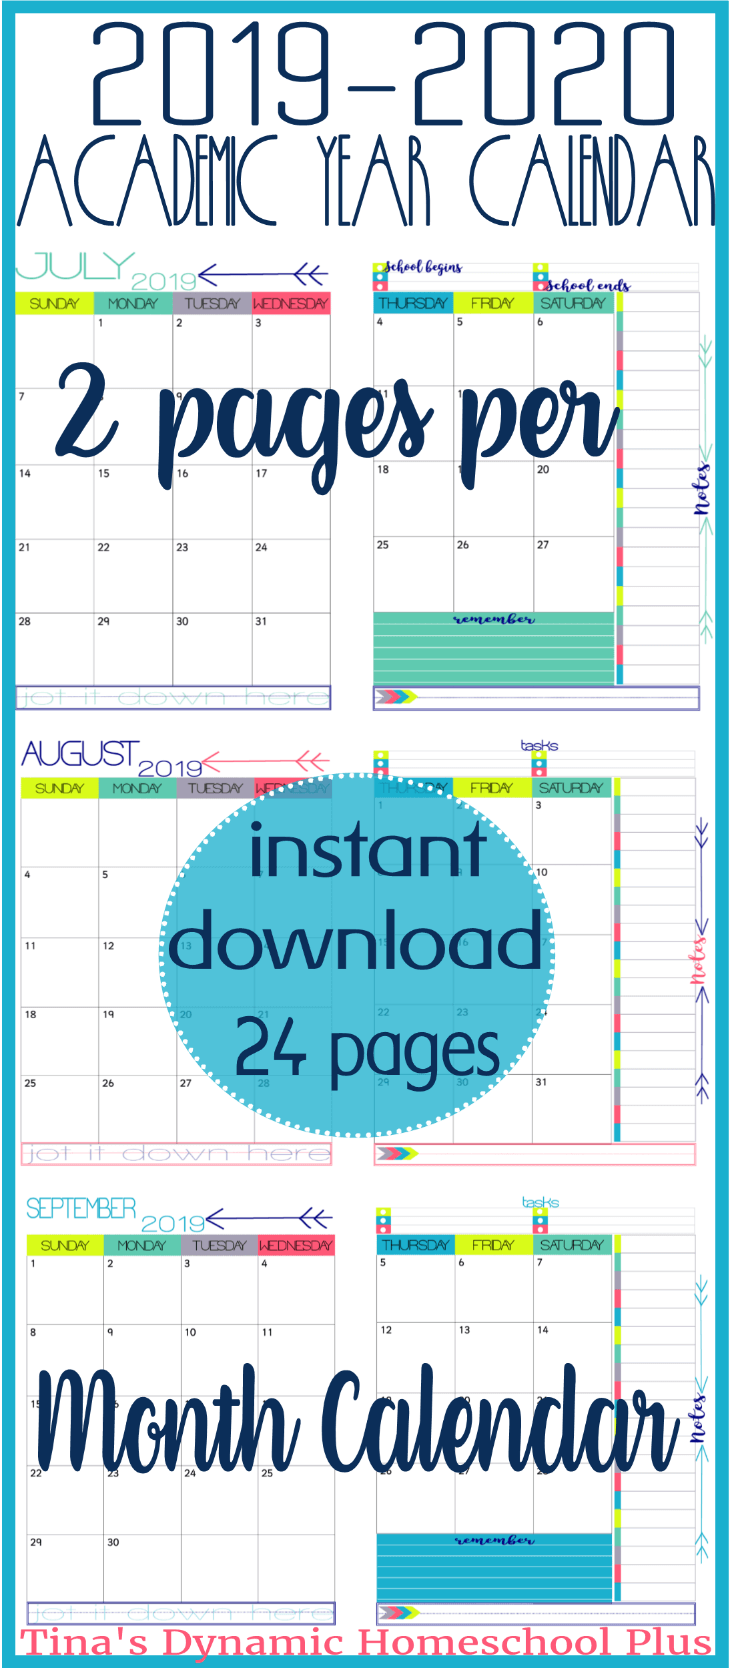 You'll love this AWESOME color choice for a homeschool planner, student planner, or home management binder. It is an academic calendar BUT it has 12 months. Grab it today and use in all of your planners! Click here to get it!